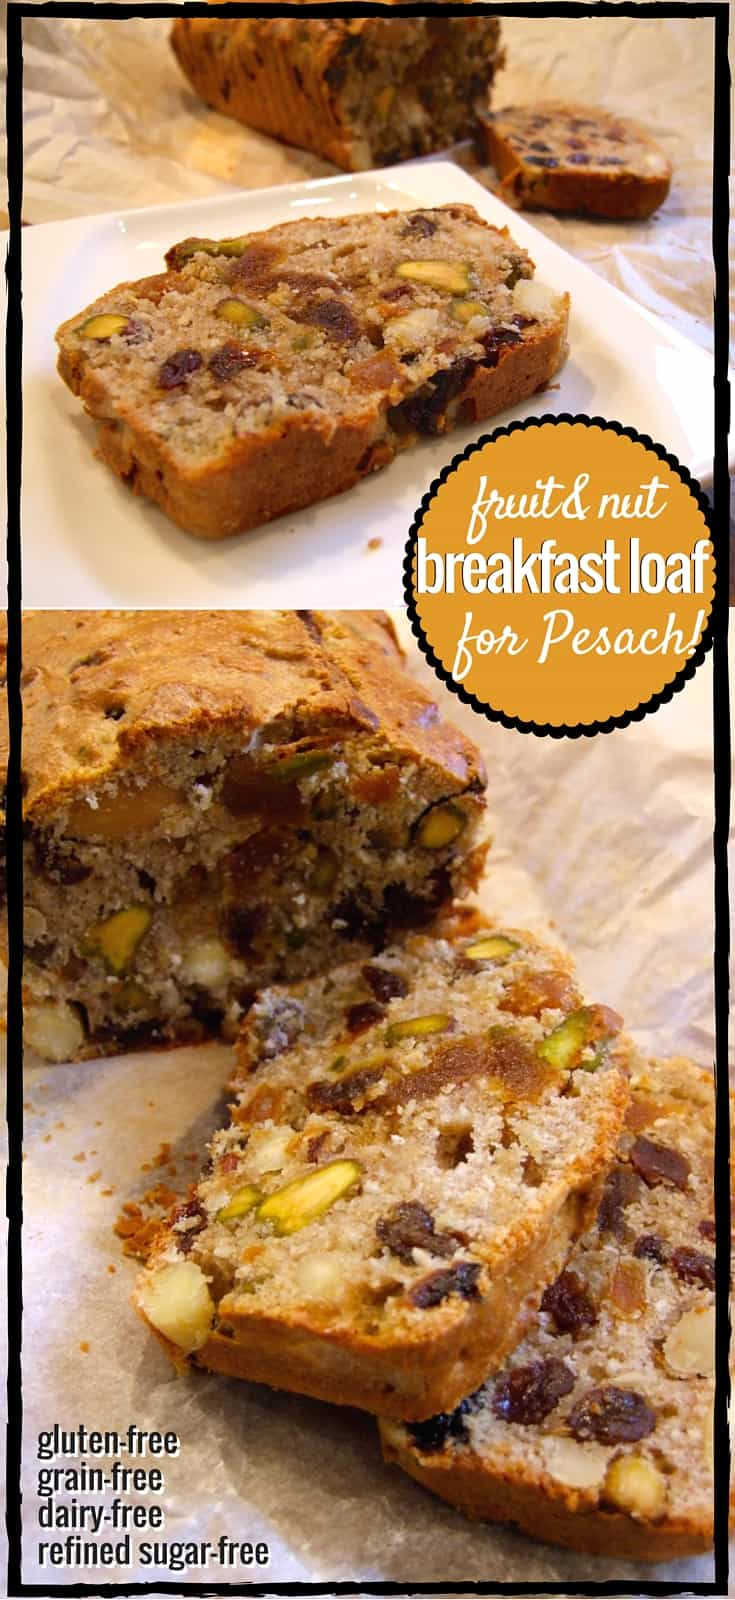 Packed with dried fruits & nuts, this naturally gluten-free breakfast loaf is delicious with lashings of butter. Enjoy it on Pesach/Passover, or year round!